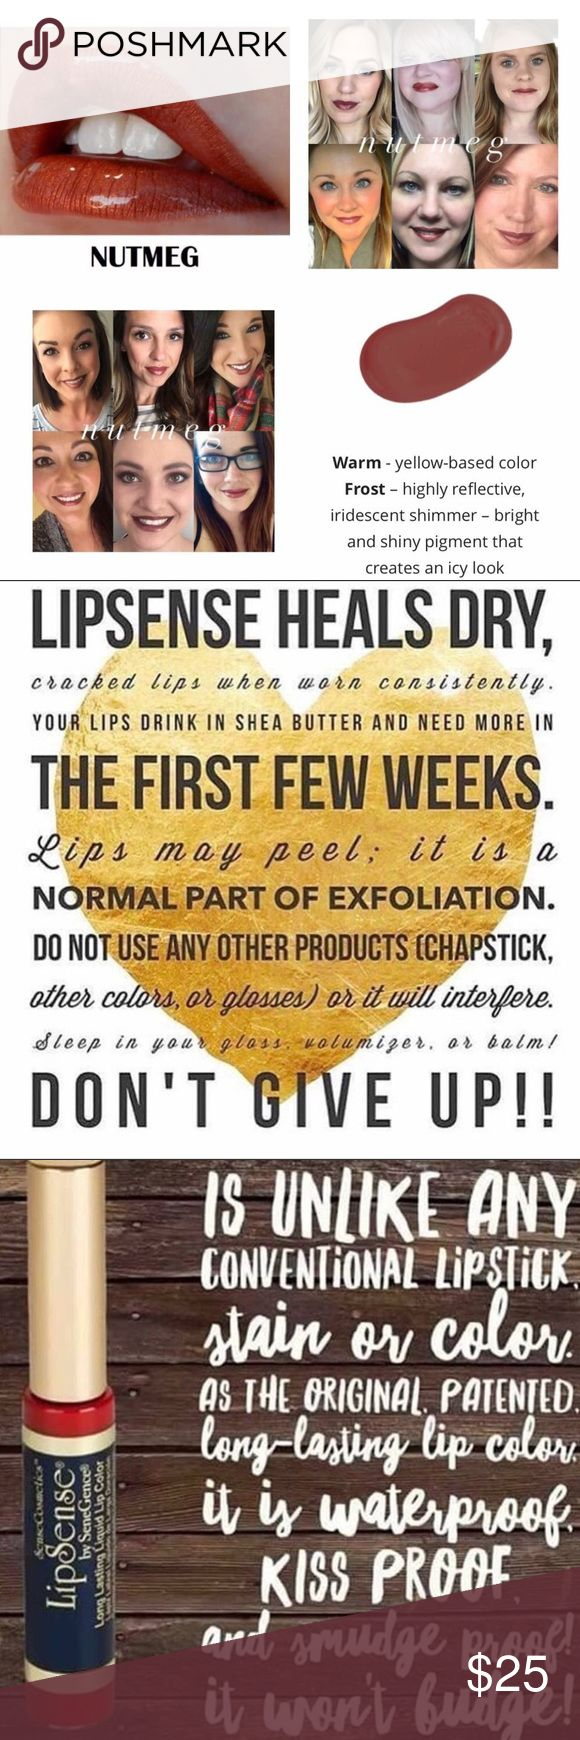 Nutmeg LipSense What is LipSense?.... LipSense is a long lasting color stay lip color. Not to be confused with a stain. It's patented technology forms a molecular bond to your lips making it last up to 18 hours. LipSense is waterproof, smudge proof and kiss proof. For first time users, it's recommended to purchase a starter kit (color, gloss, oops remover) I have each posted so if you need a starter kit, just create a bundle. Comment sold, and I'll send you an invoice! LipSense Makeup…